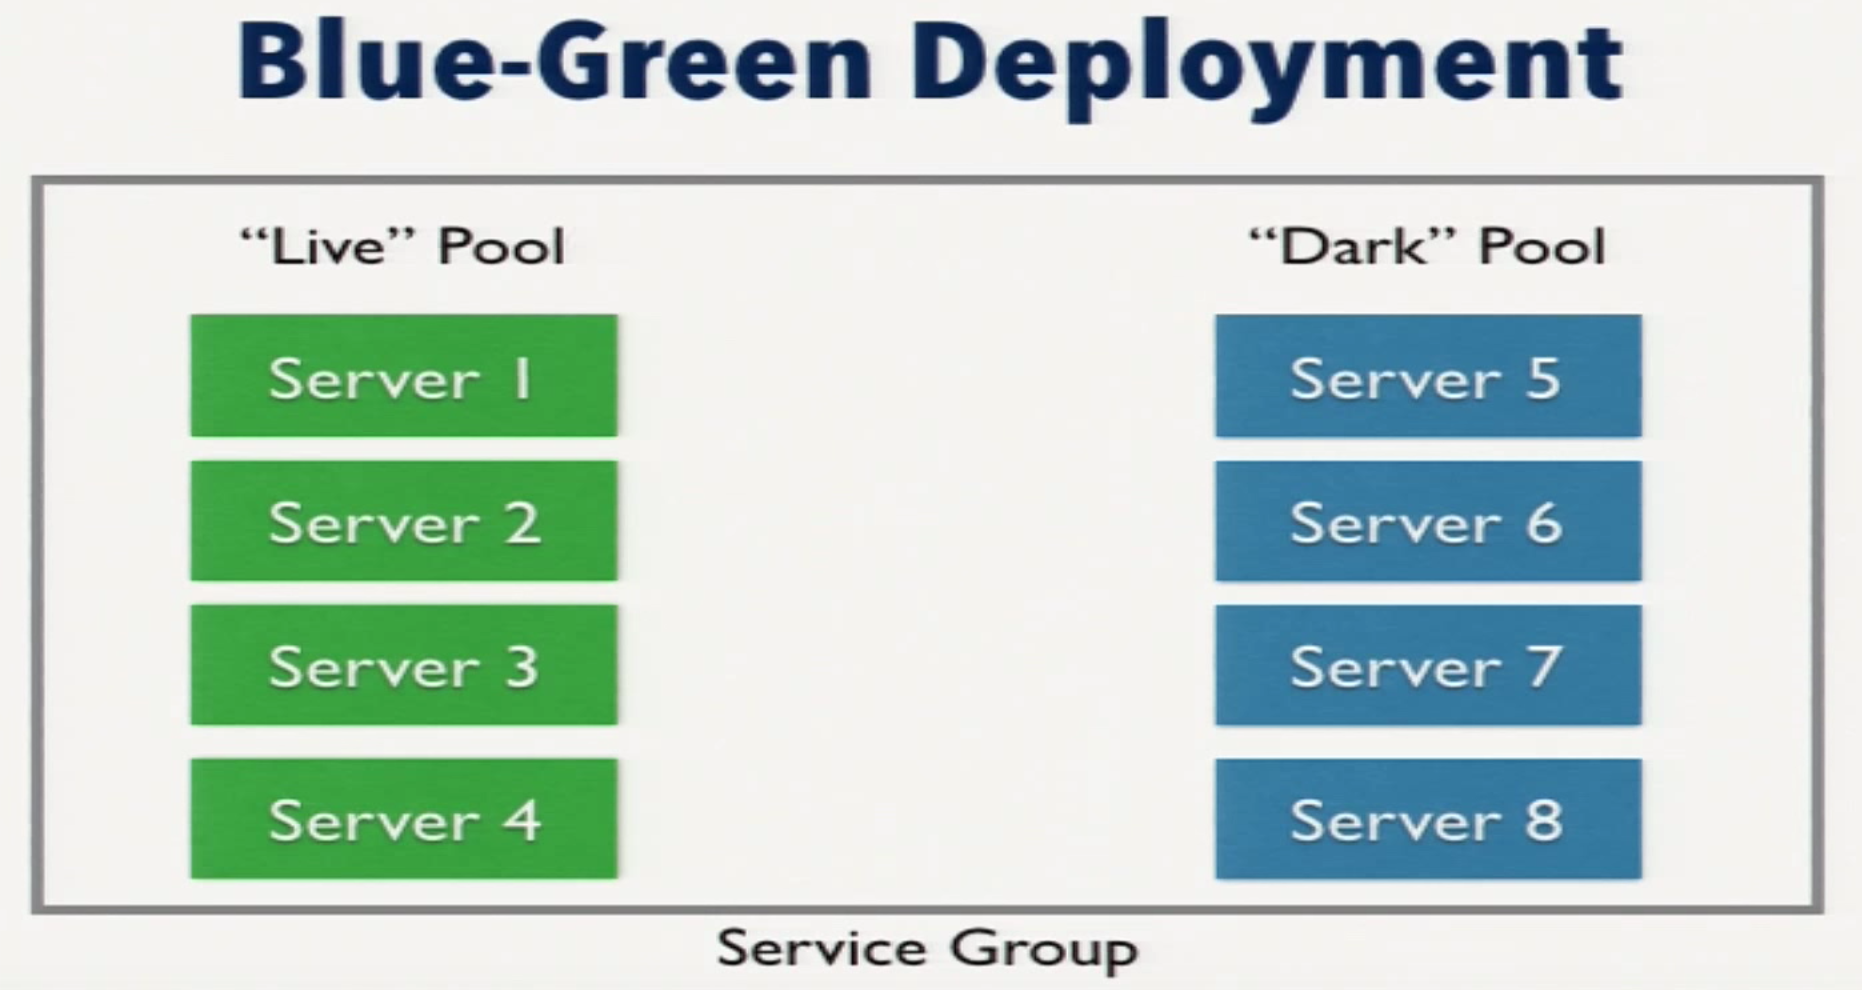 A Blue-Green Deployment Server Grouping